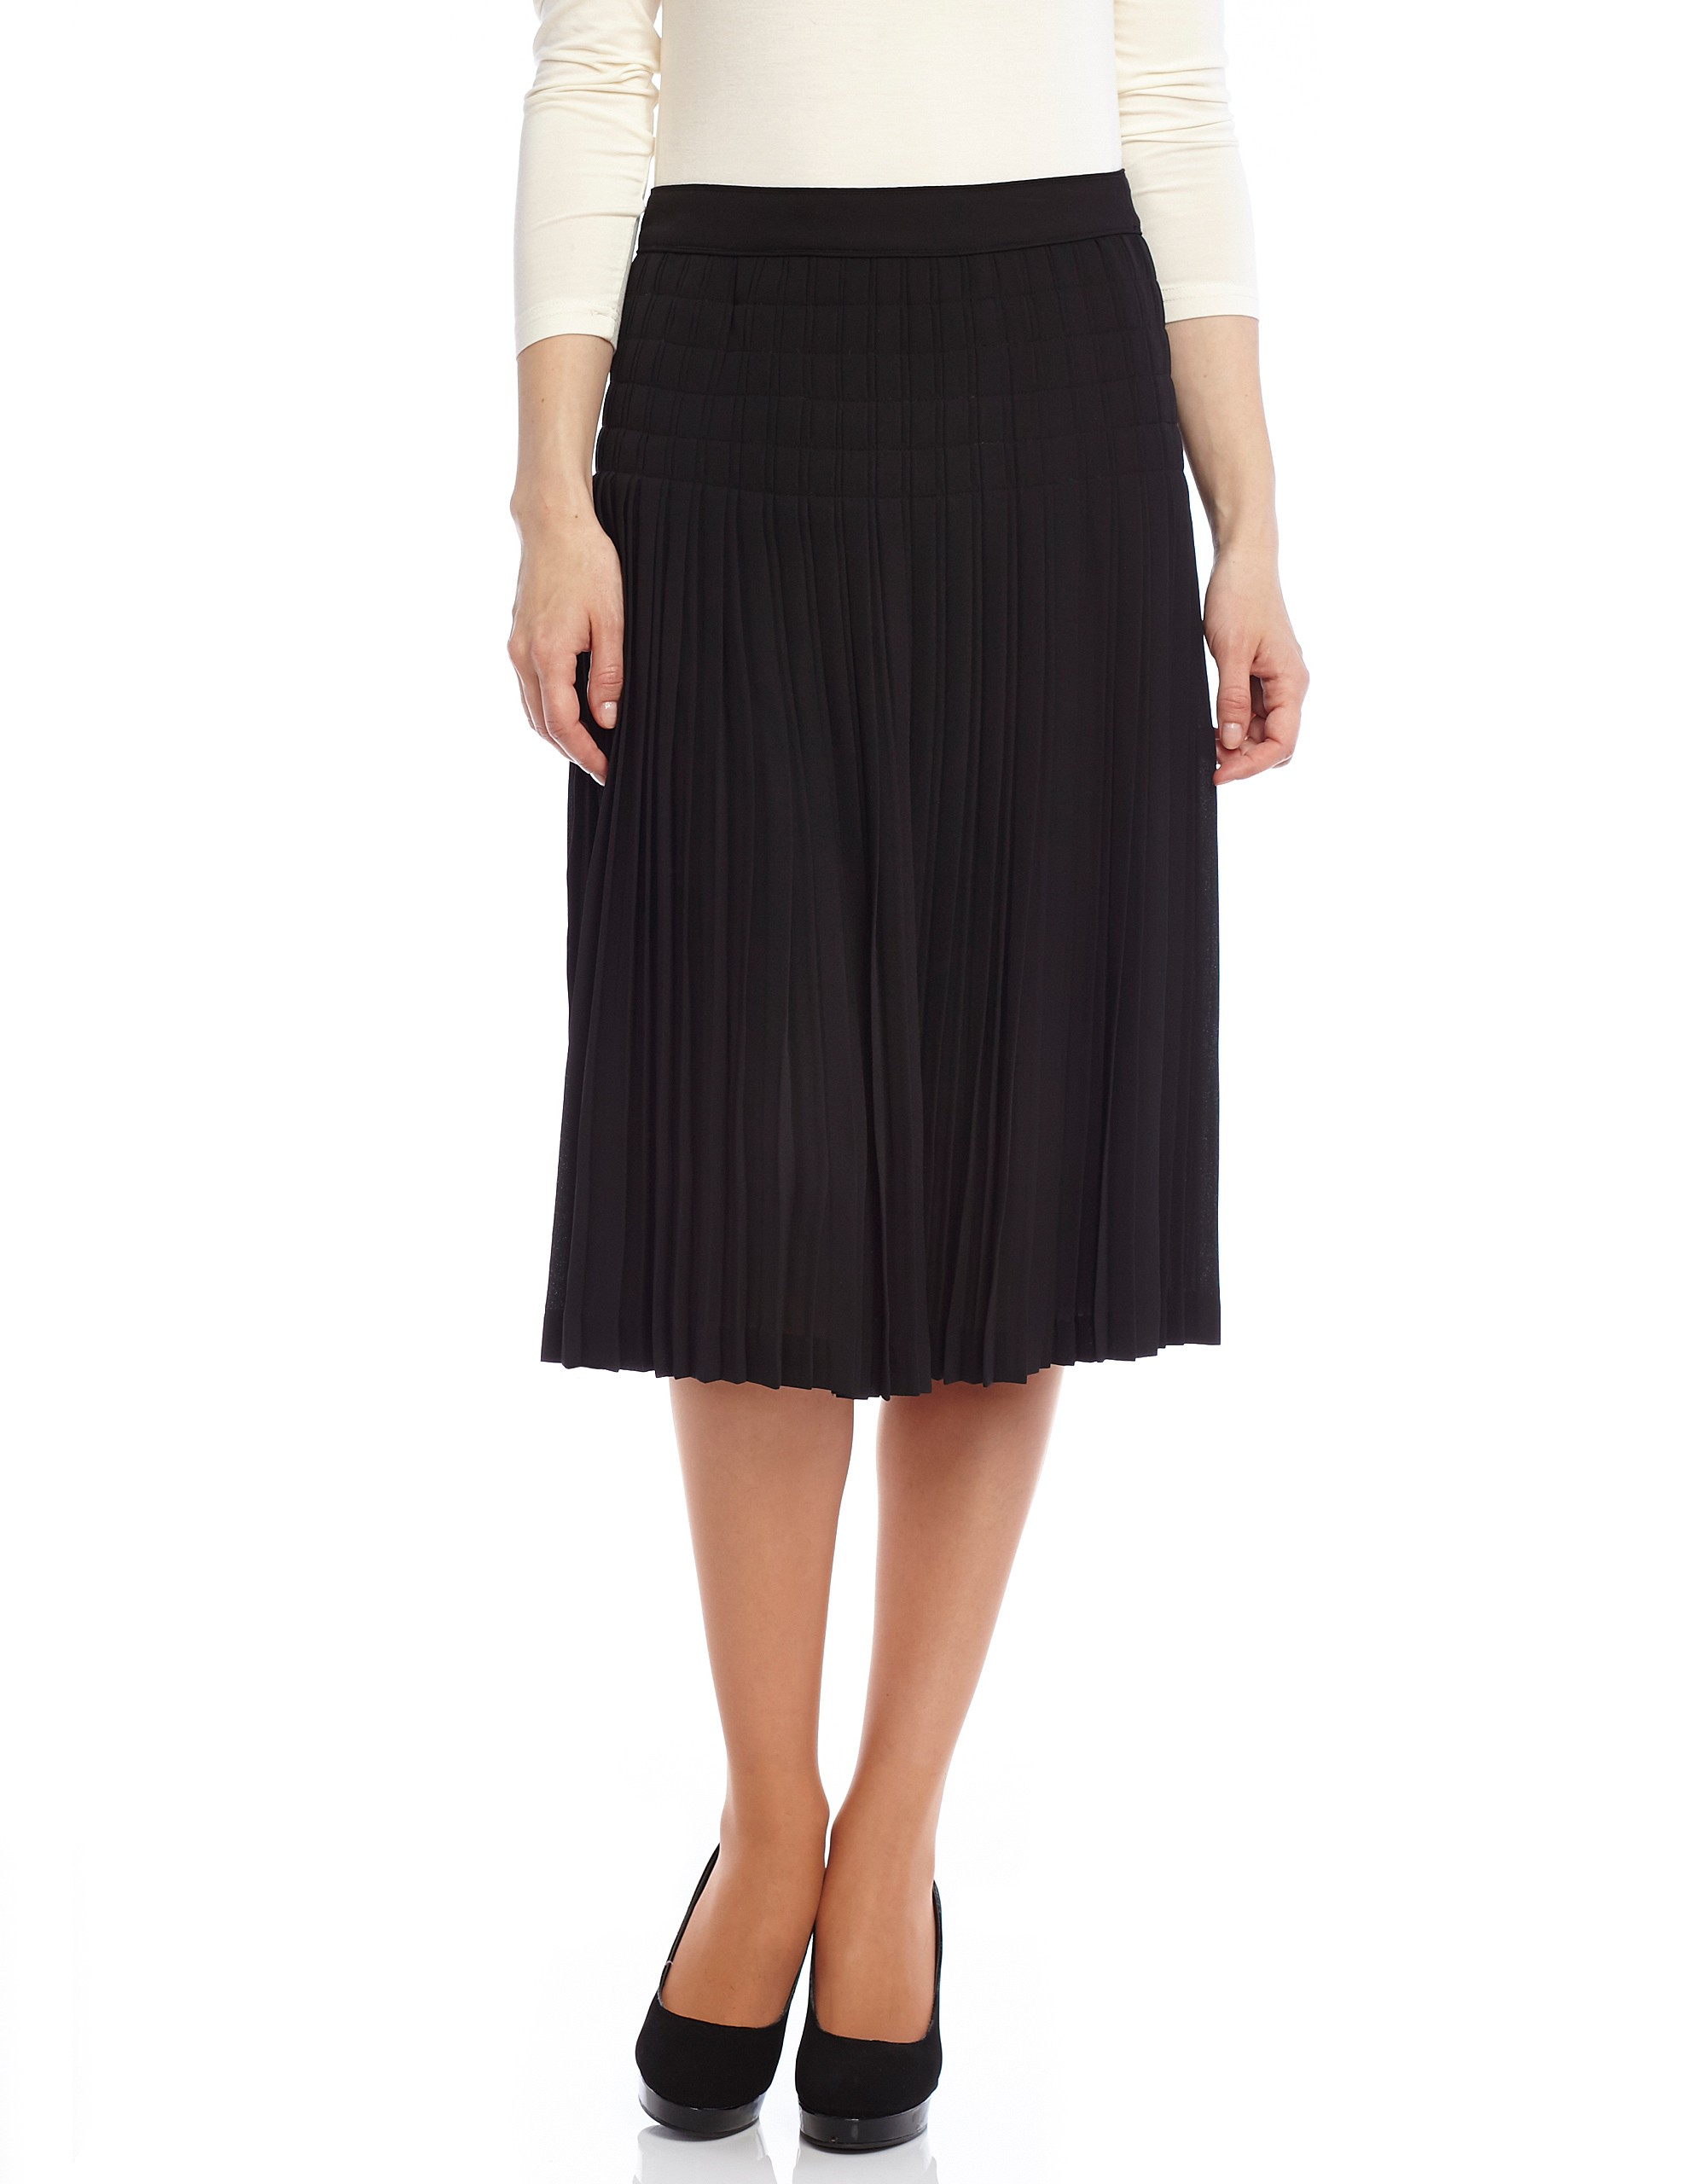 a68e26375 Pleated Stitched Chiffon Midi Skirt at The Lingerie Shop New York